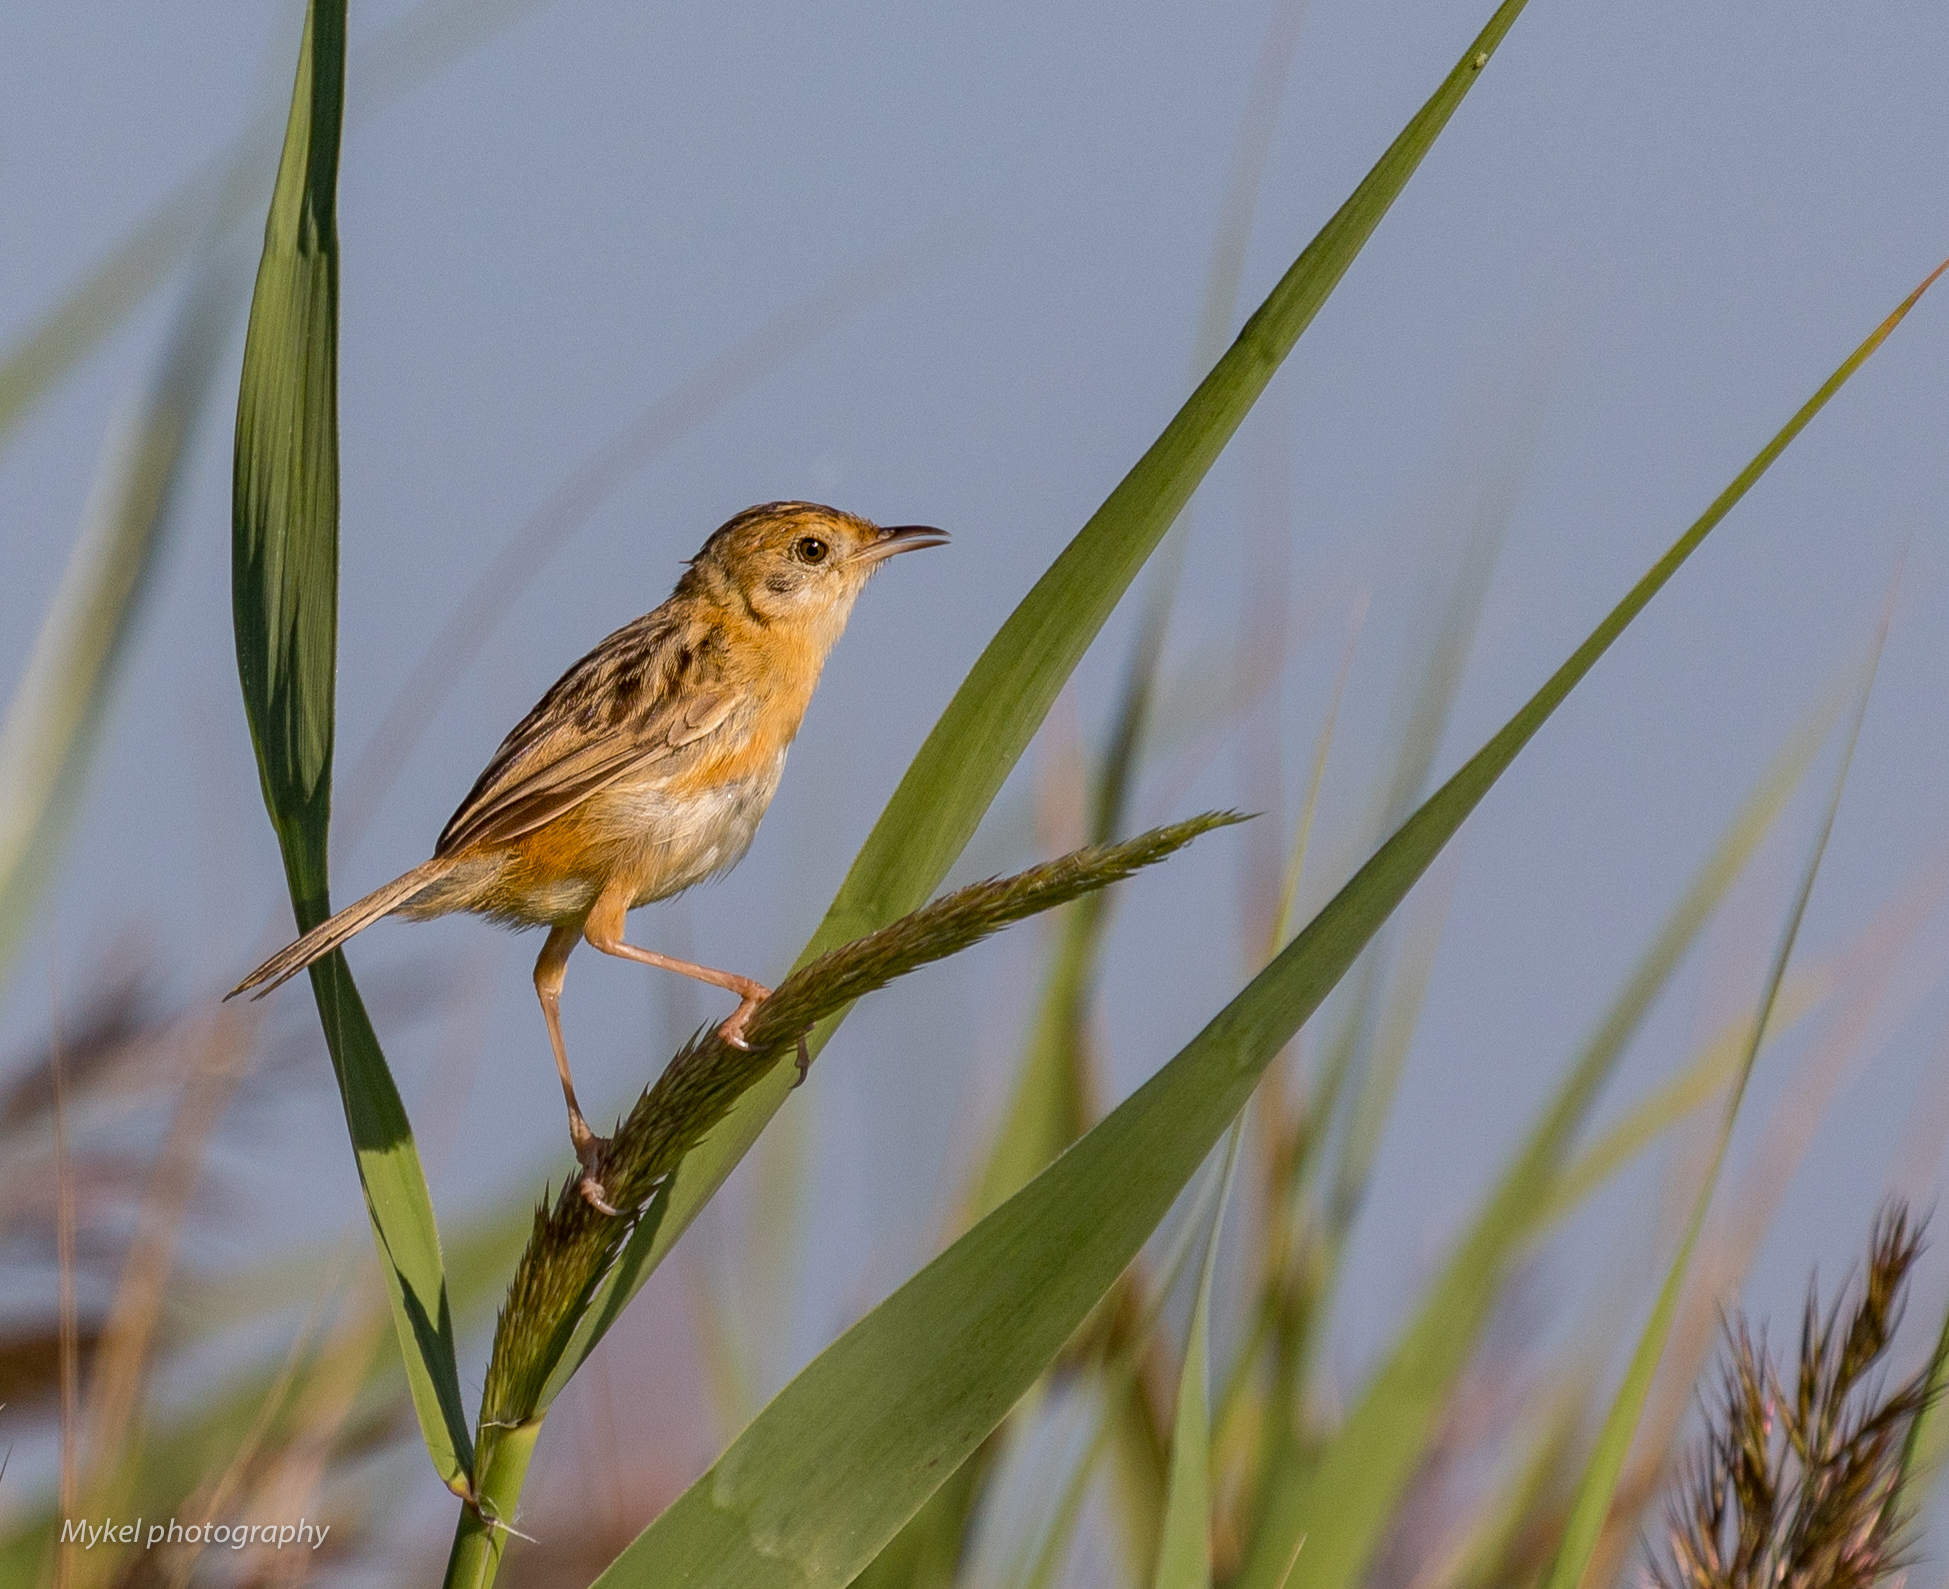 The morning songster, the Golden-headed Cisticola